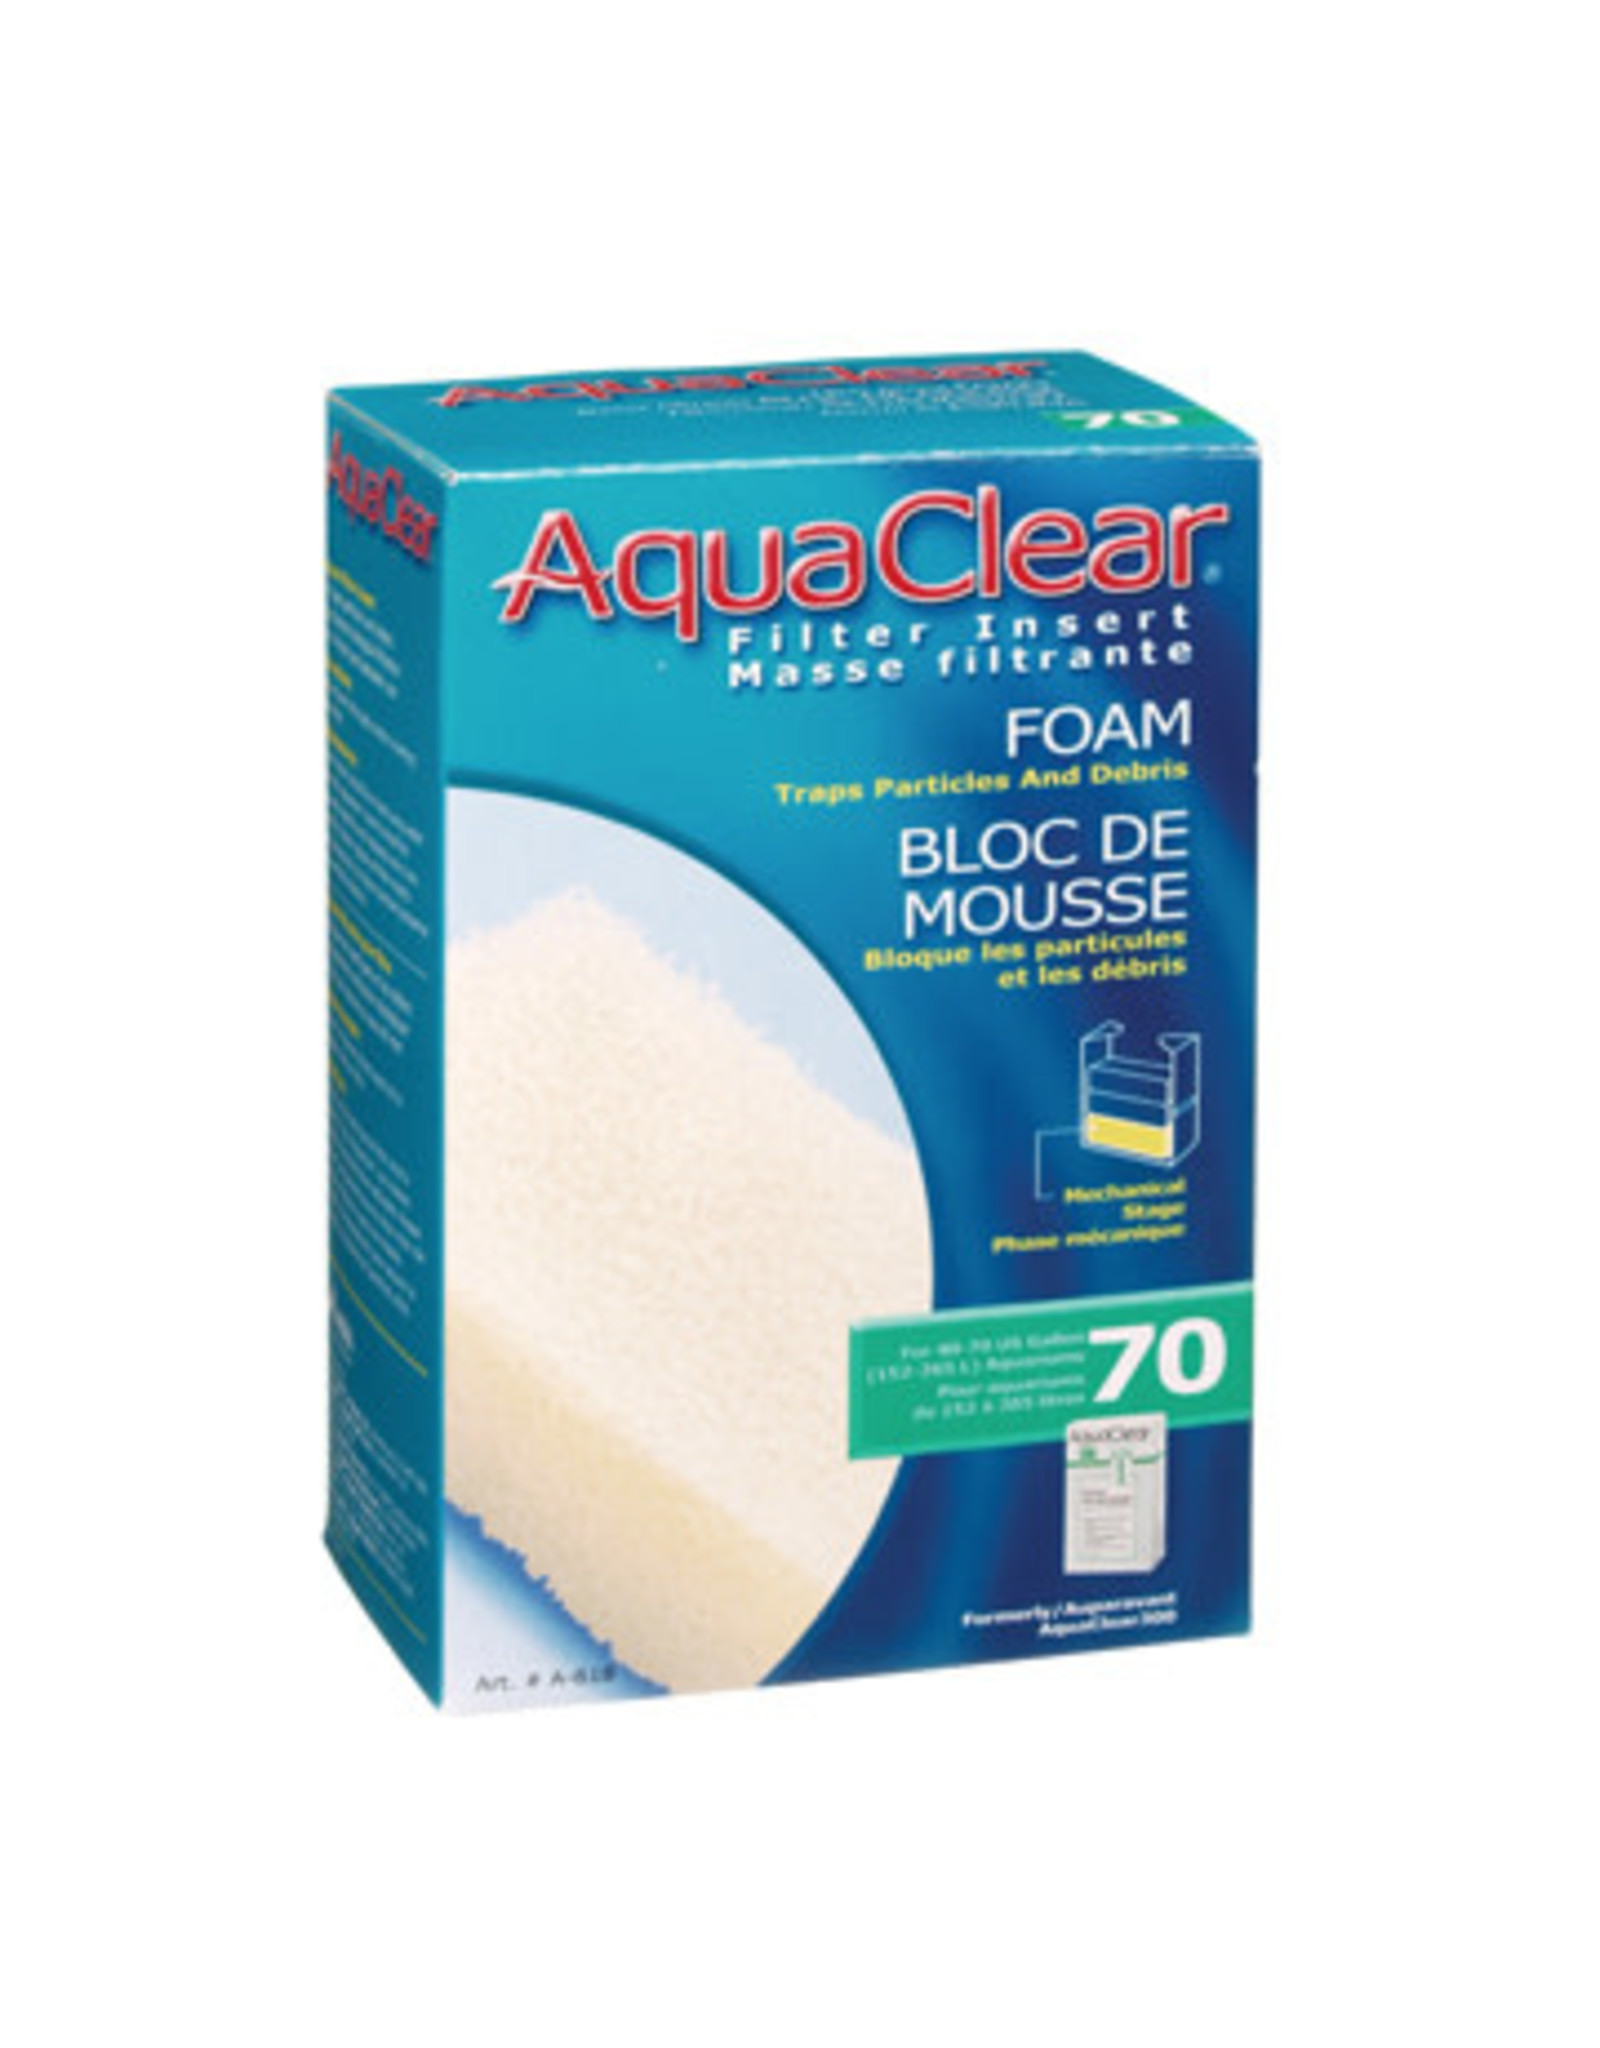 AquaClear AquaClear 70 Foam Filter